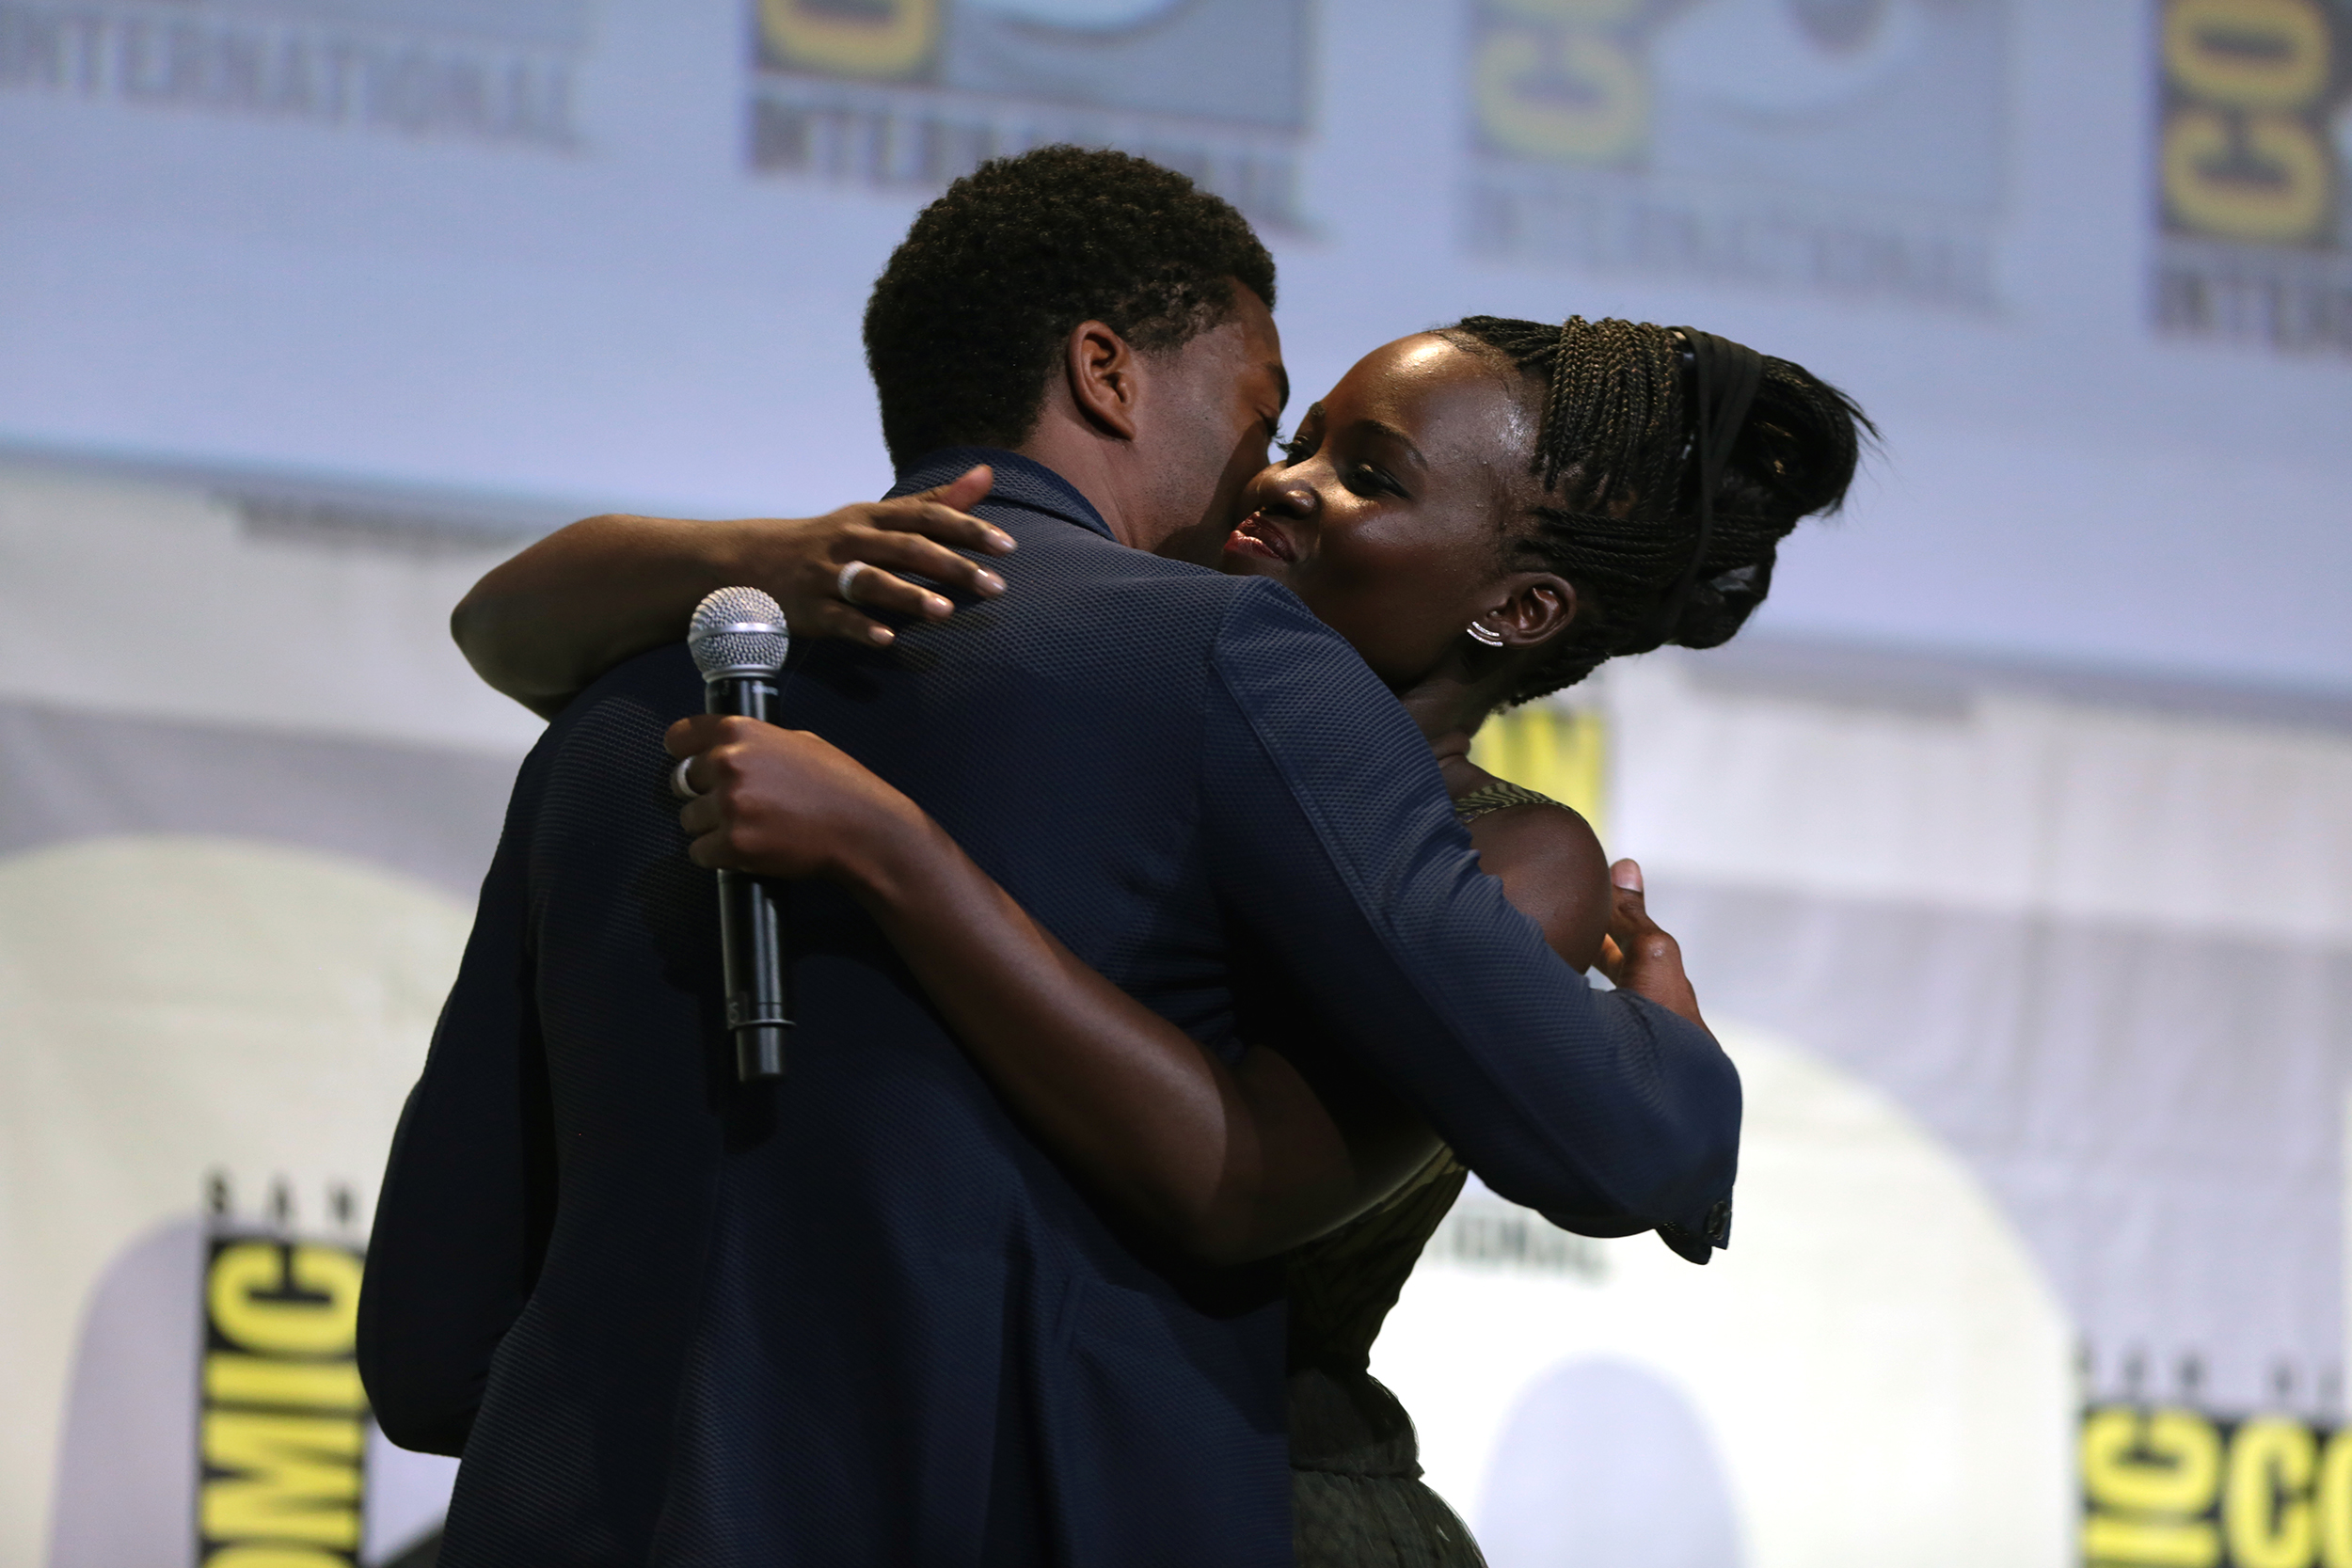 Pictured above is Chadwick Boseman and Lupita Nyong'o at the 2016 Comic Con International in San Diego promoting their film  Black Panther  in which they play Prince T'Challa and Nakia, respectively. The movie, directed by Ryan Coogler, broke box office records in its opening weekend and features a predominately black cast who gave stunning performances. (Gage Skidmore/Creative Commons)